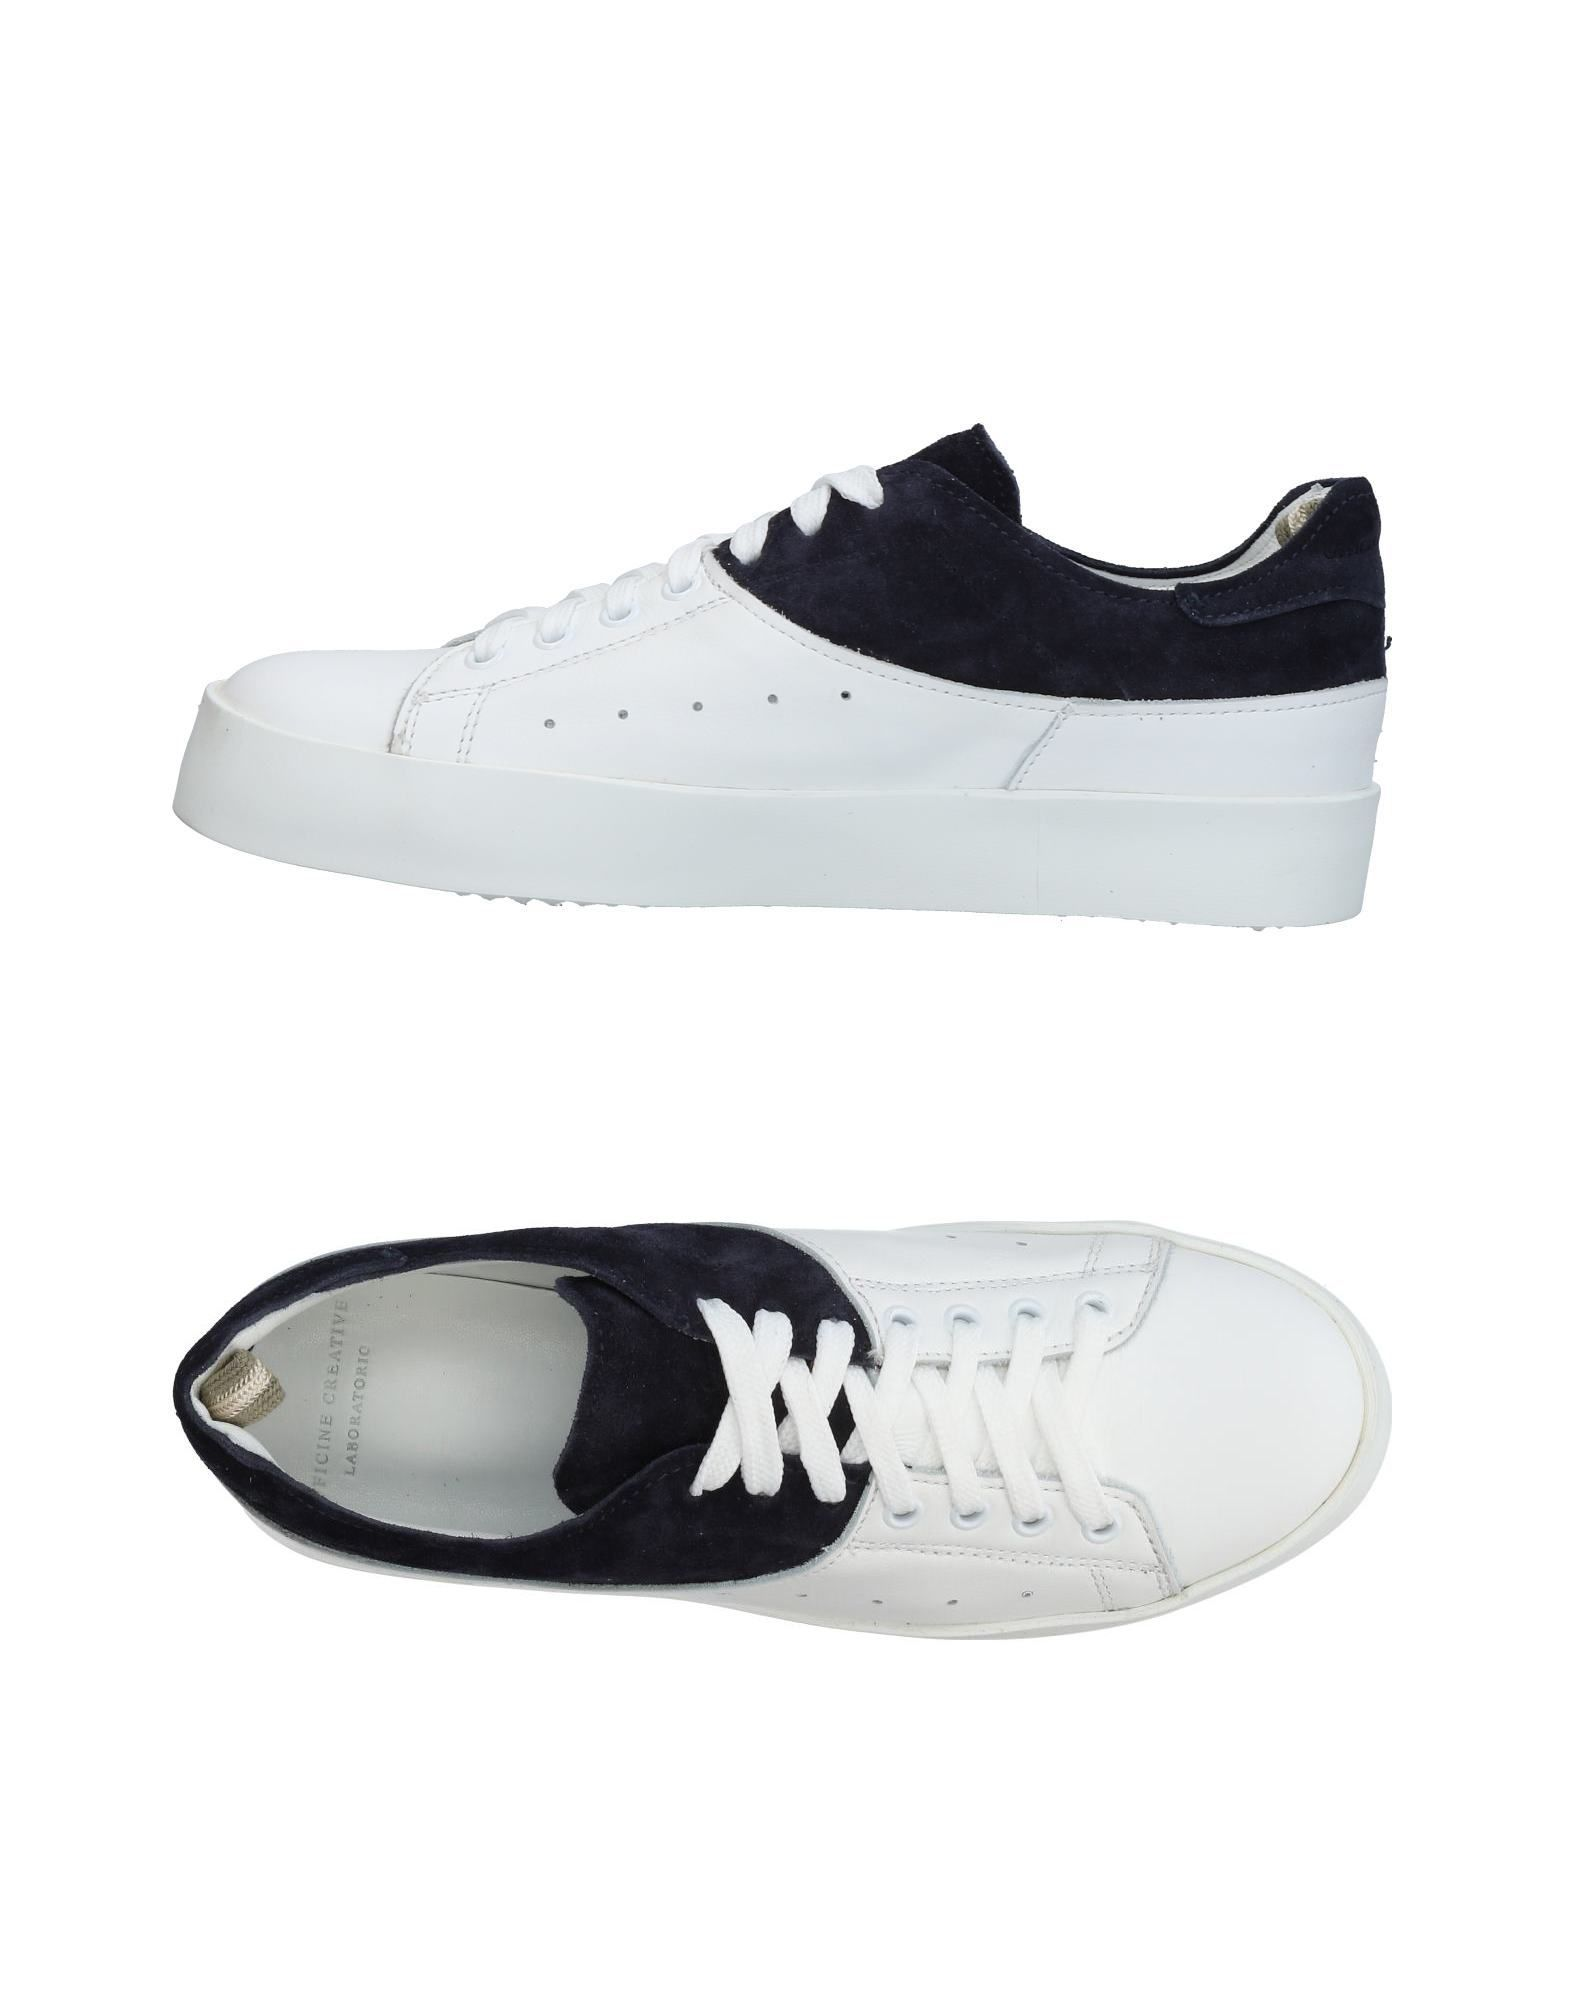 Stilvolle Italia billige Schuhe Officine Creative Italia Stilvolle Sneakers Damen  11445269HX 13d85d